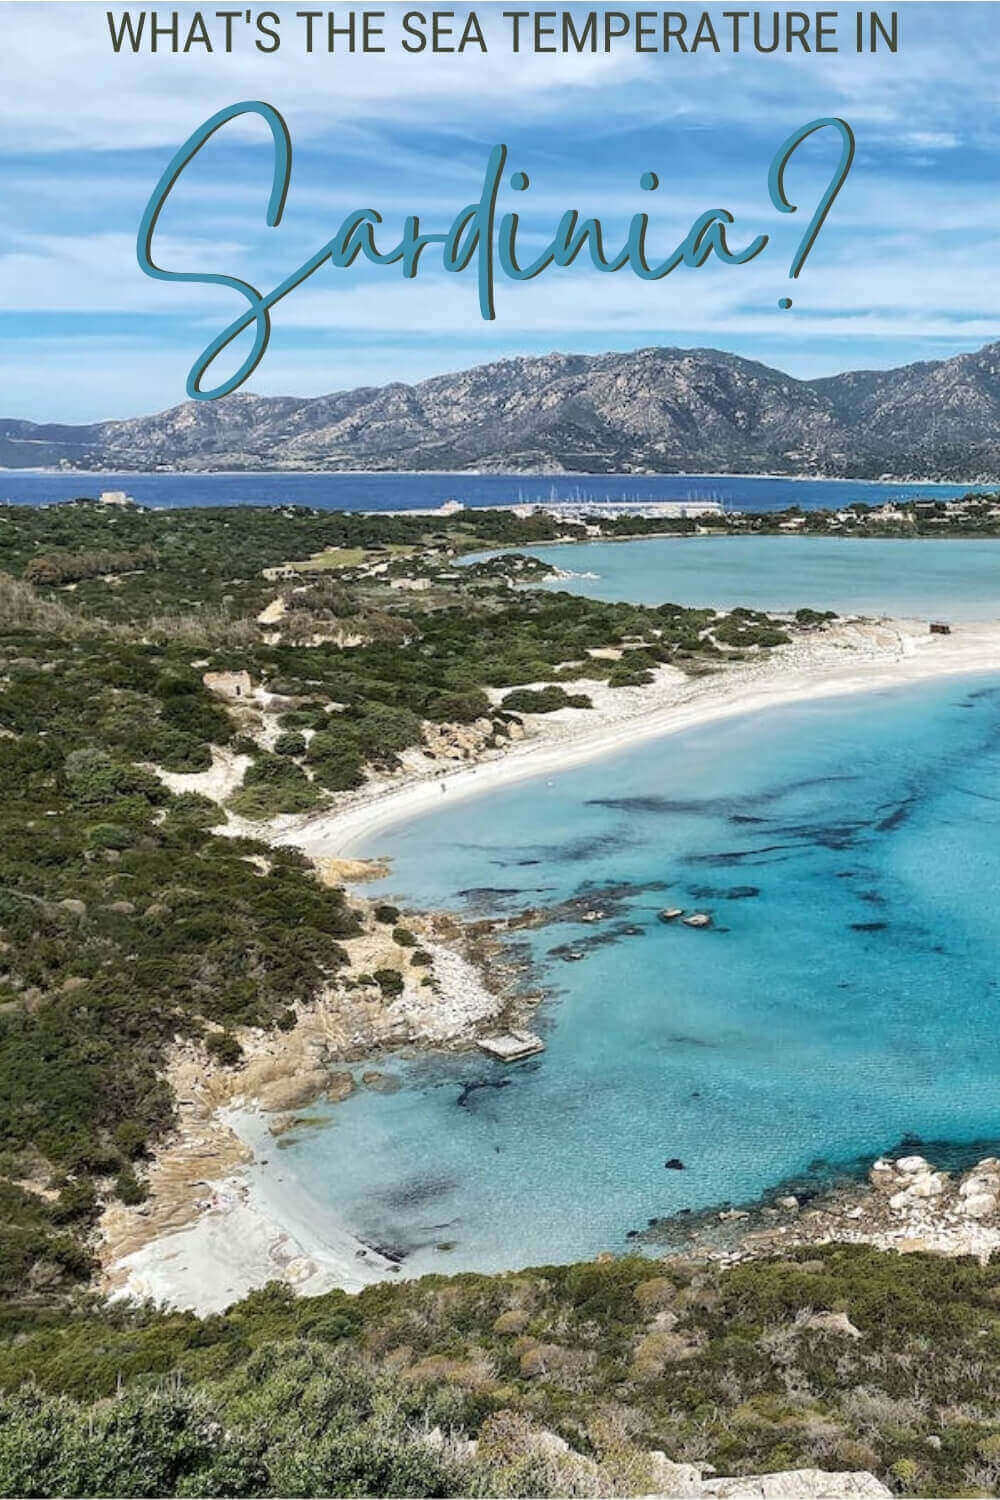 Check out the sea temperature in Sardinia and discover if you can swim year round - via @c_tavani